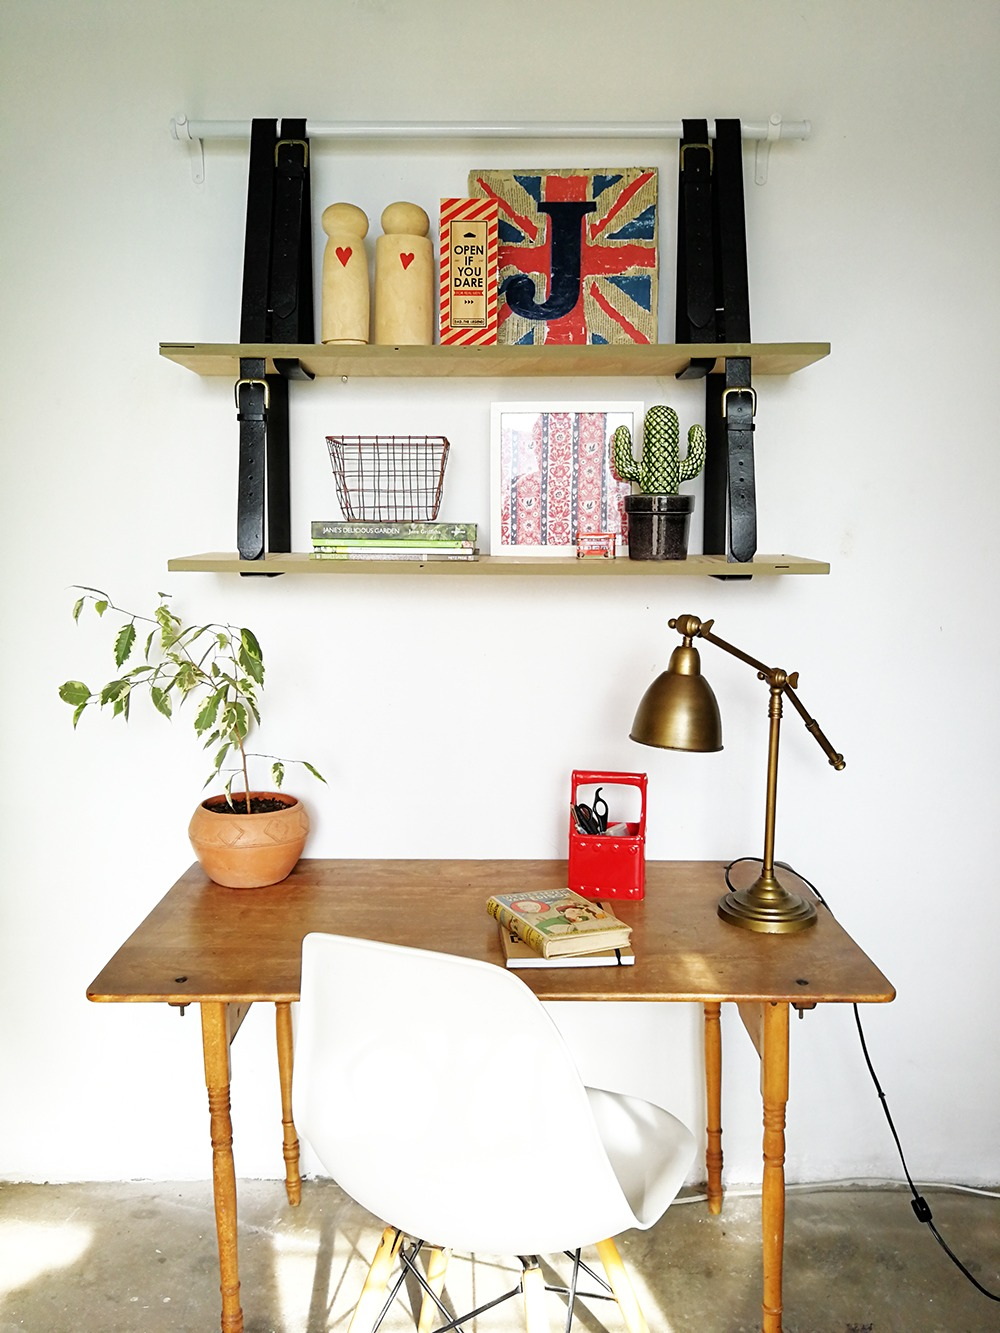 hanging-belt-shelf-in-a-home-office-with-a-wooden-desk-and-copper-table-lamp-and-red-details